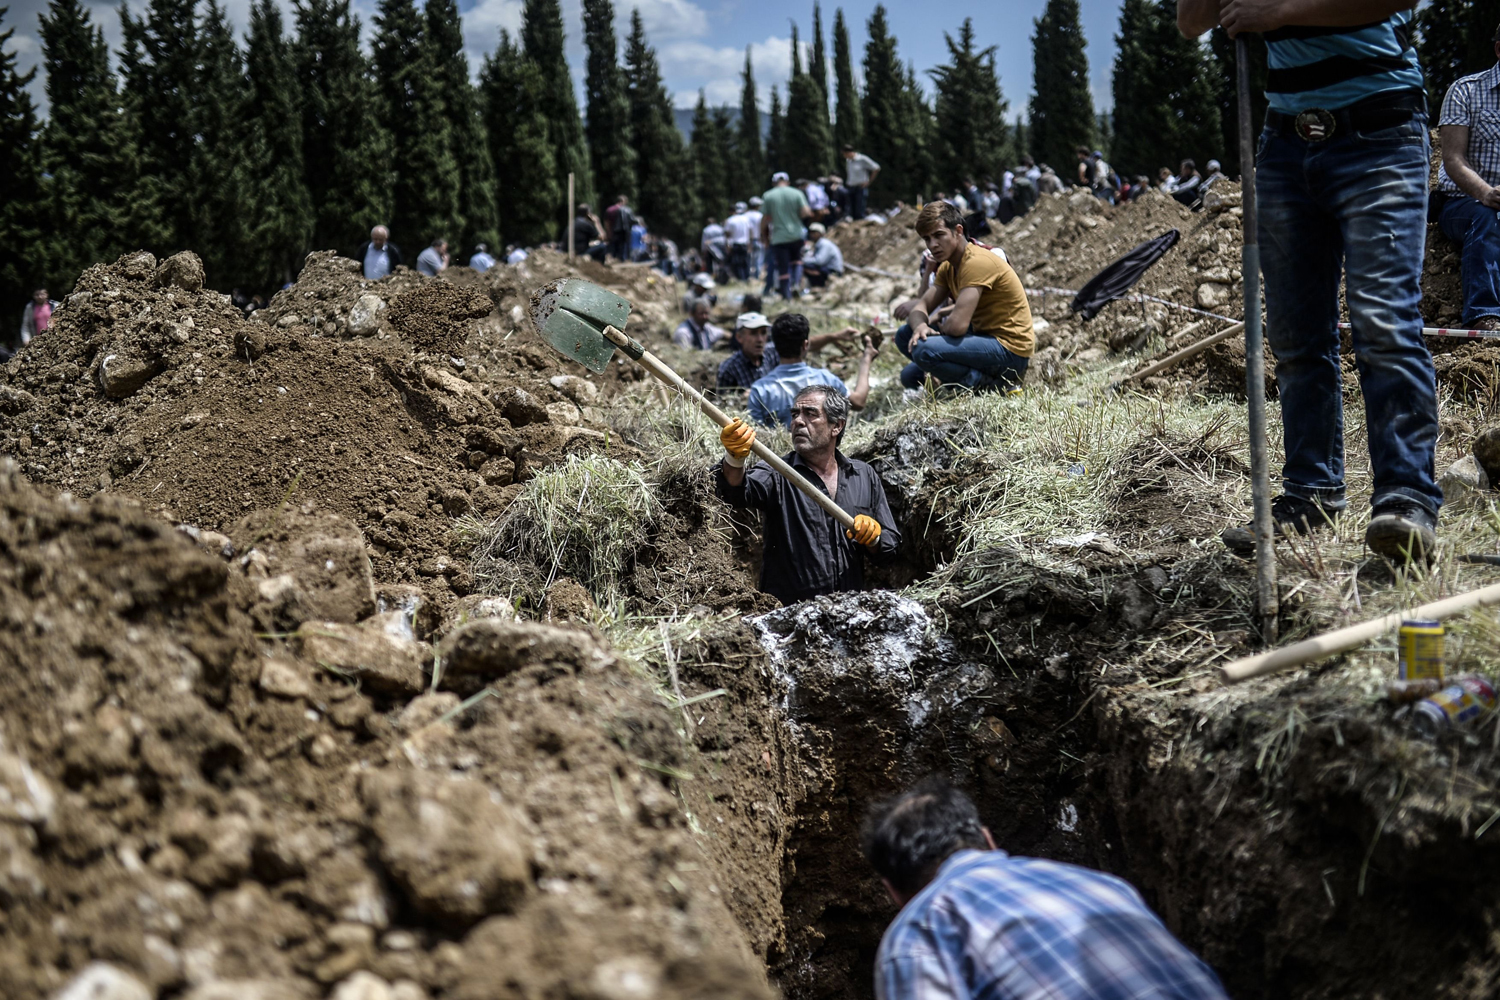 People dig graves for miners in a cemetery during the funeral ceremony of miners who died in an explosion, in the western Turkish province of  Manisa, May 15, 2014.